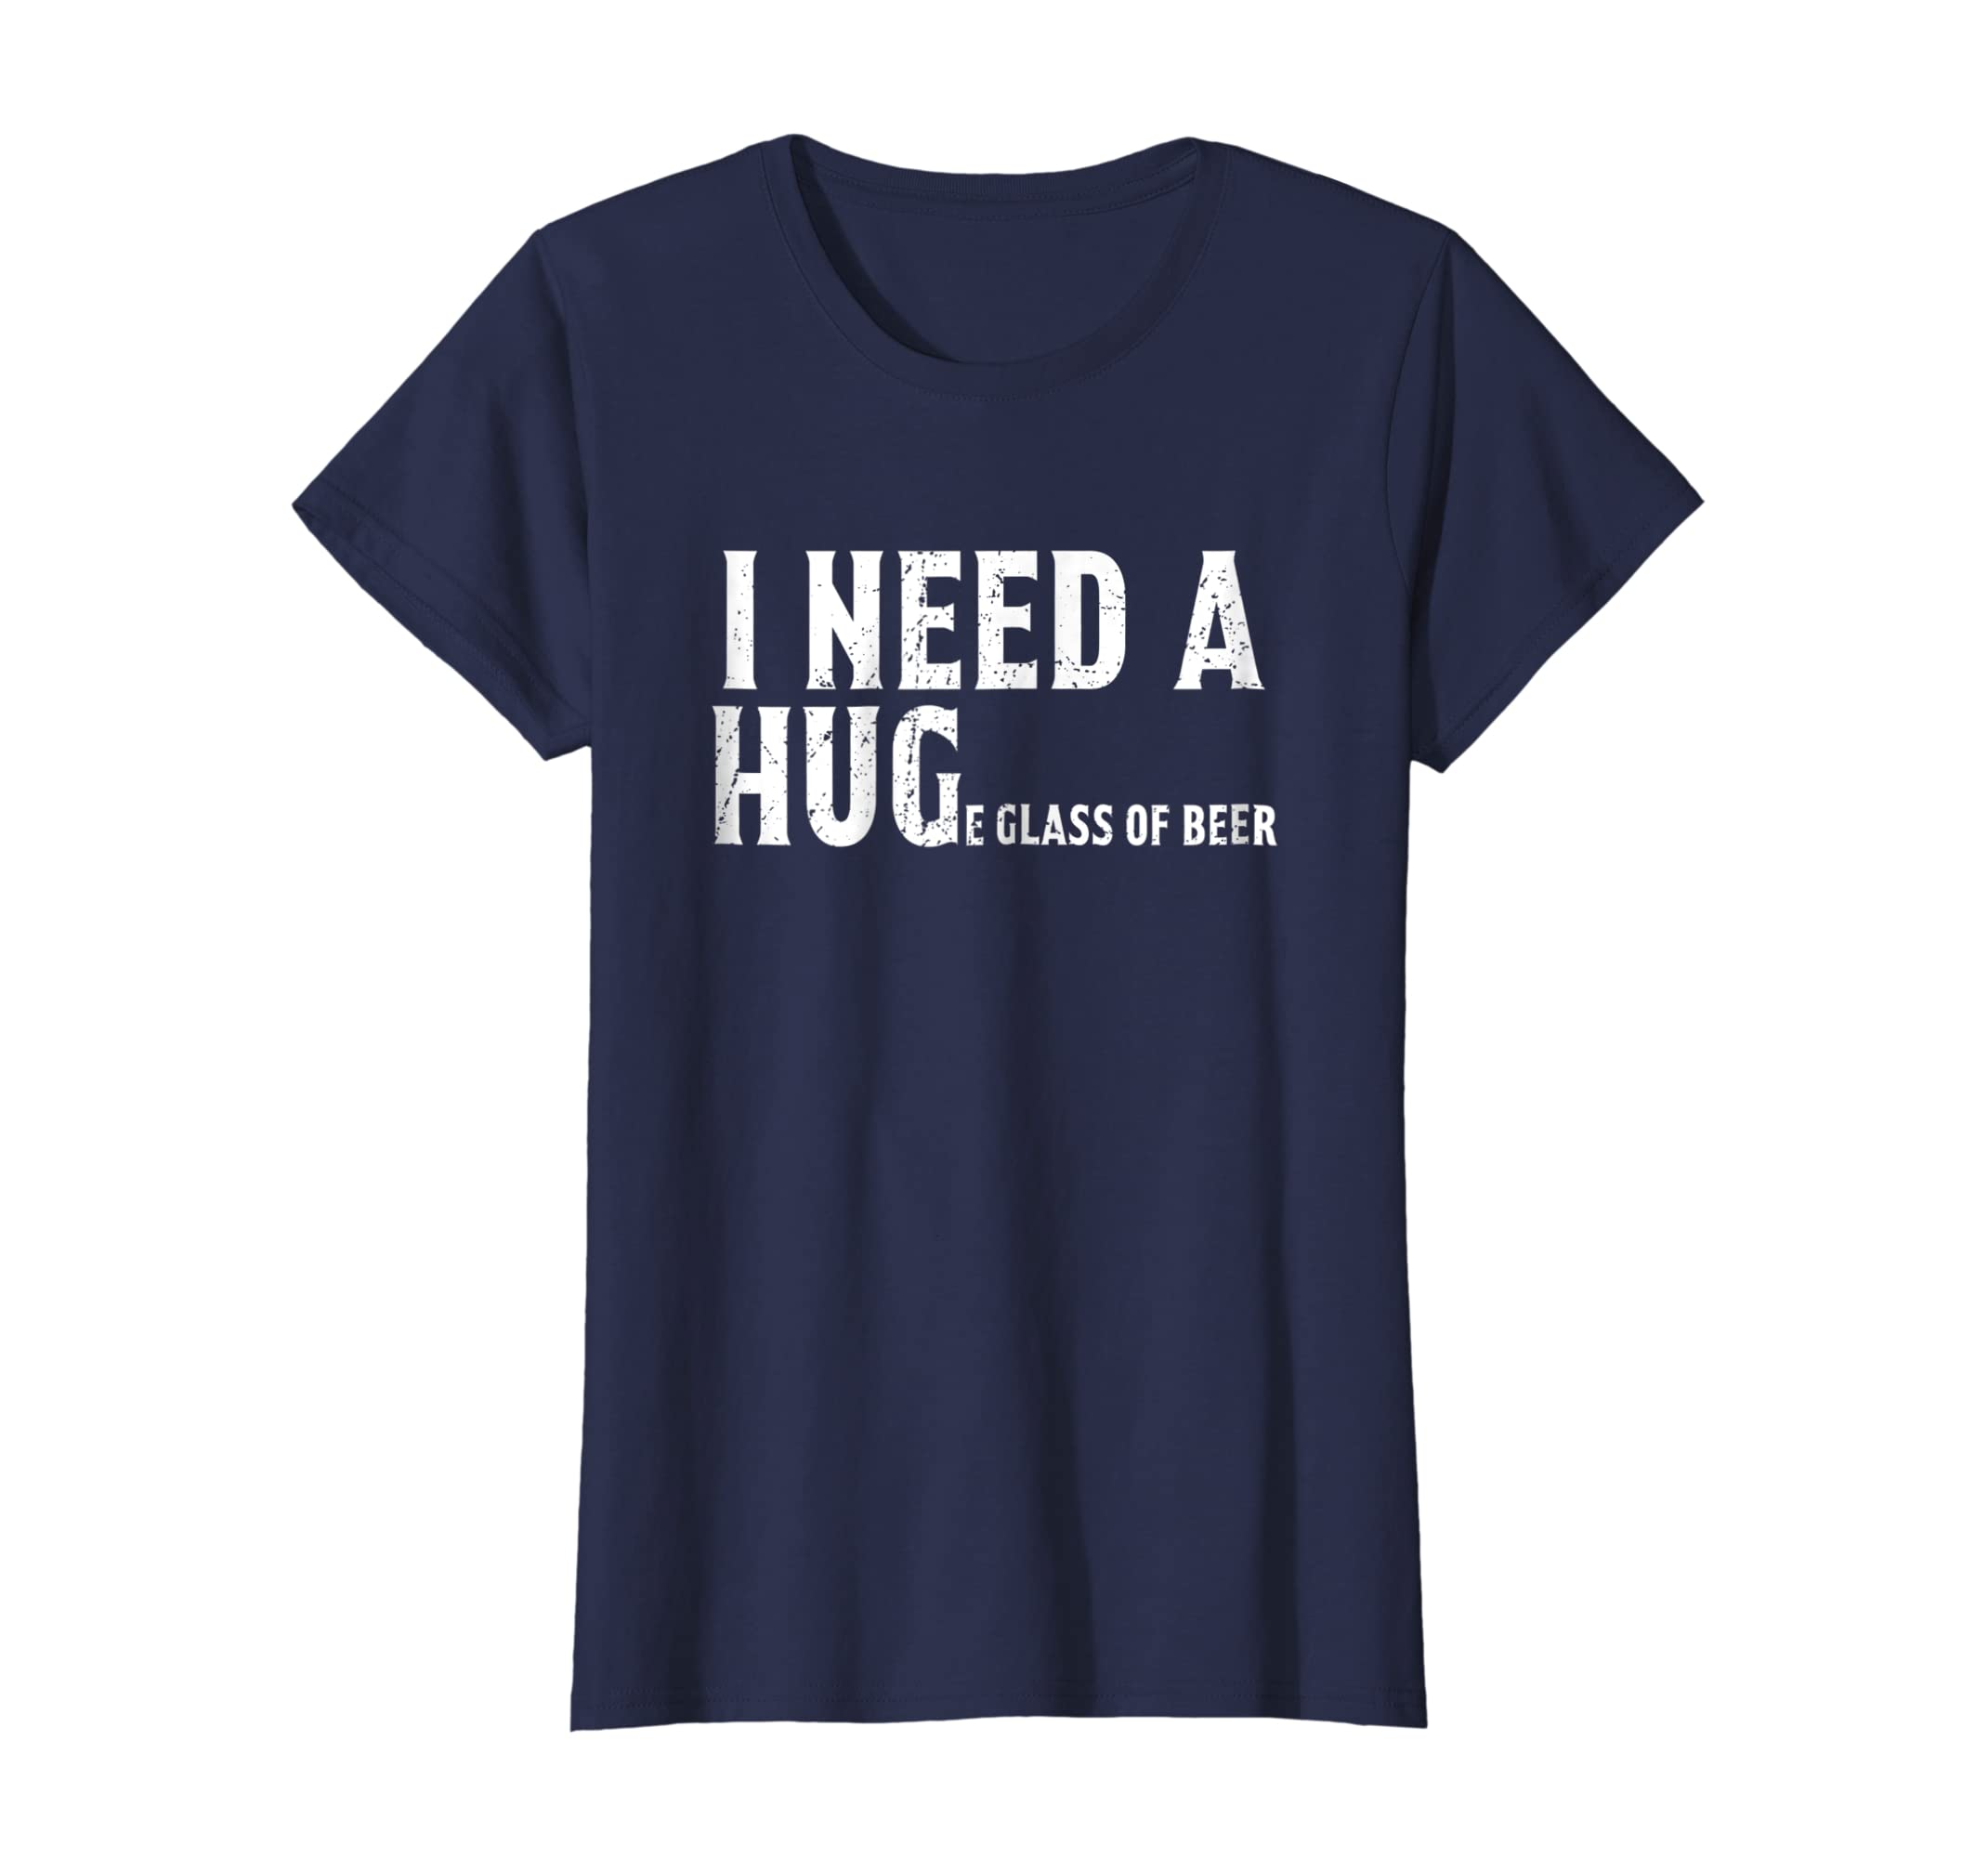 2fa78b2290 Amazon.com: I need a huge glass of beer t shirt funny beer shirts: Clothing